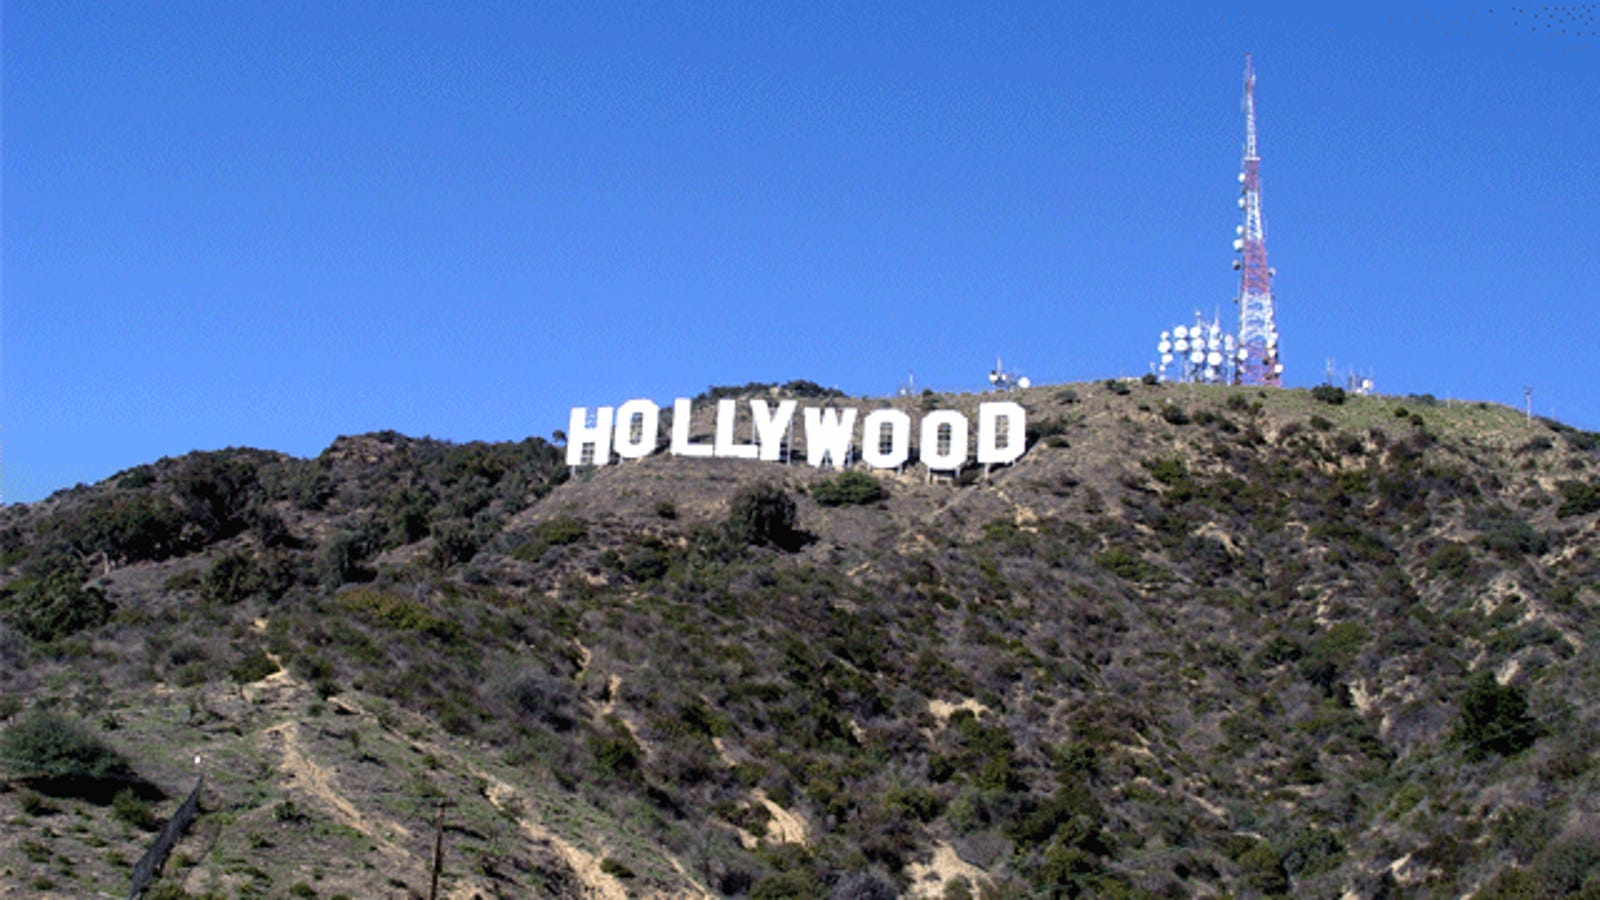 Progressive Near Me >> Why People Keep Trying to Erase the Hollywood Sign From Google Maps